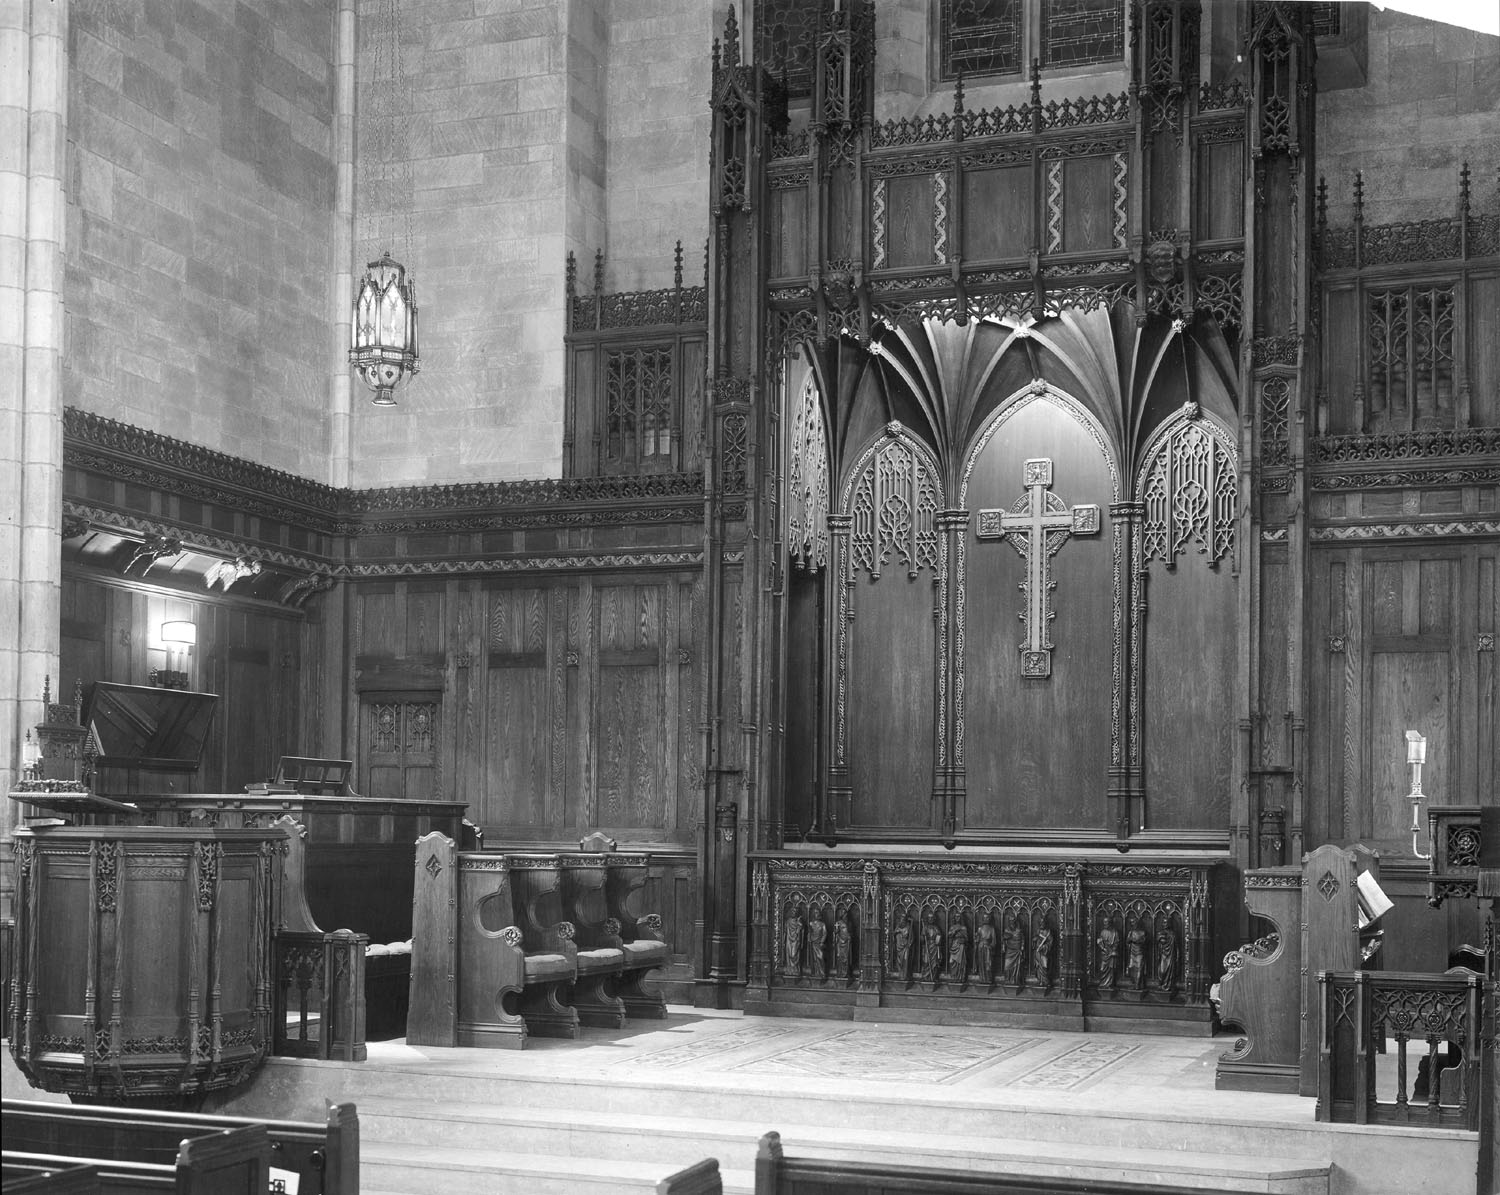 Console of Hook & Hasting Organ, Op. 2455 (1922) in Park Avenue Baptist Church - New York City (The Riverside Church Archive)